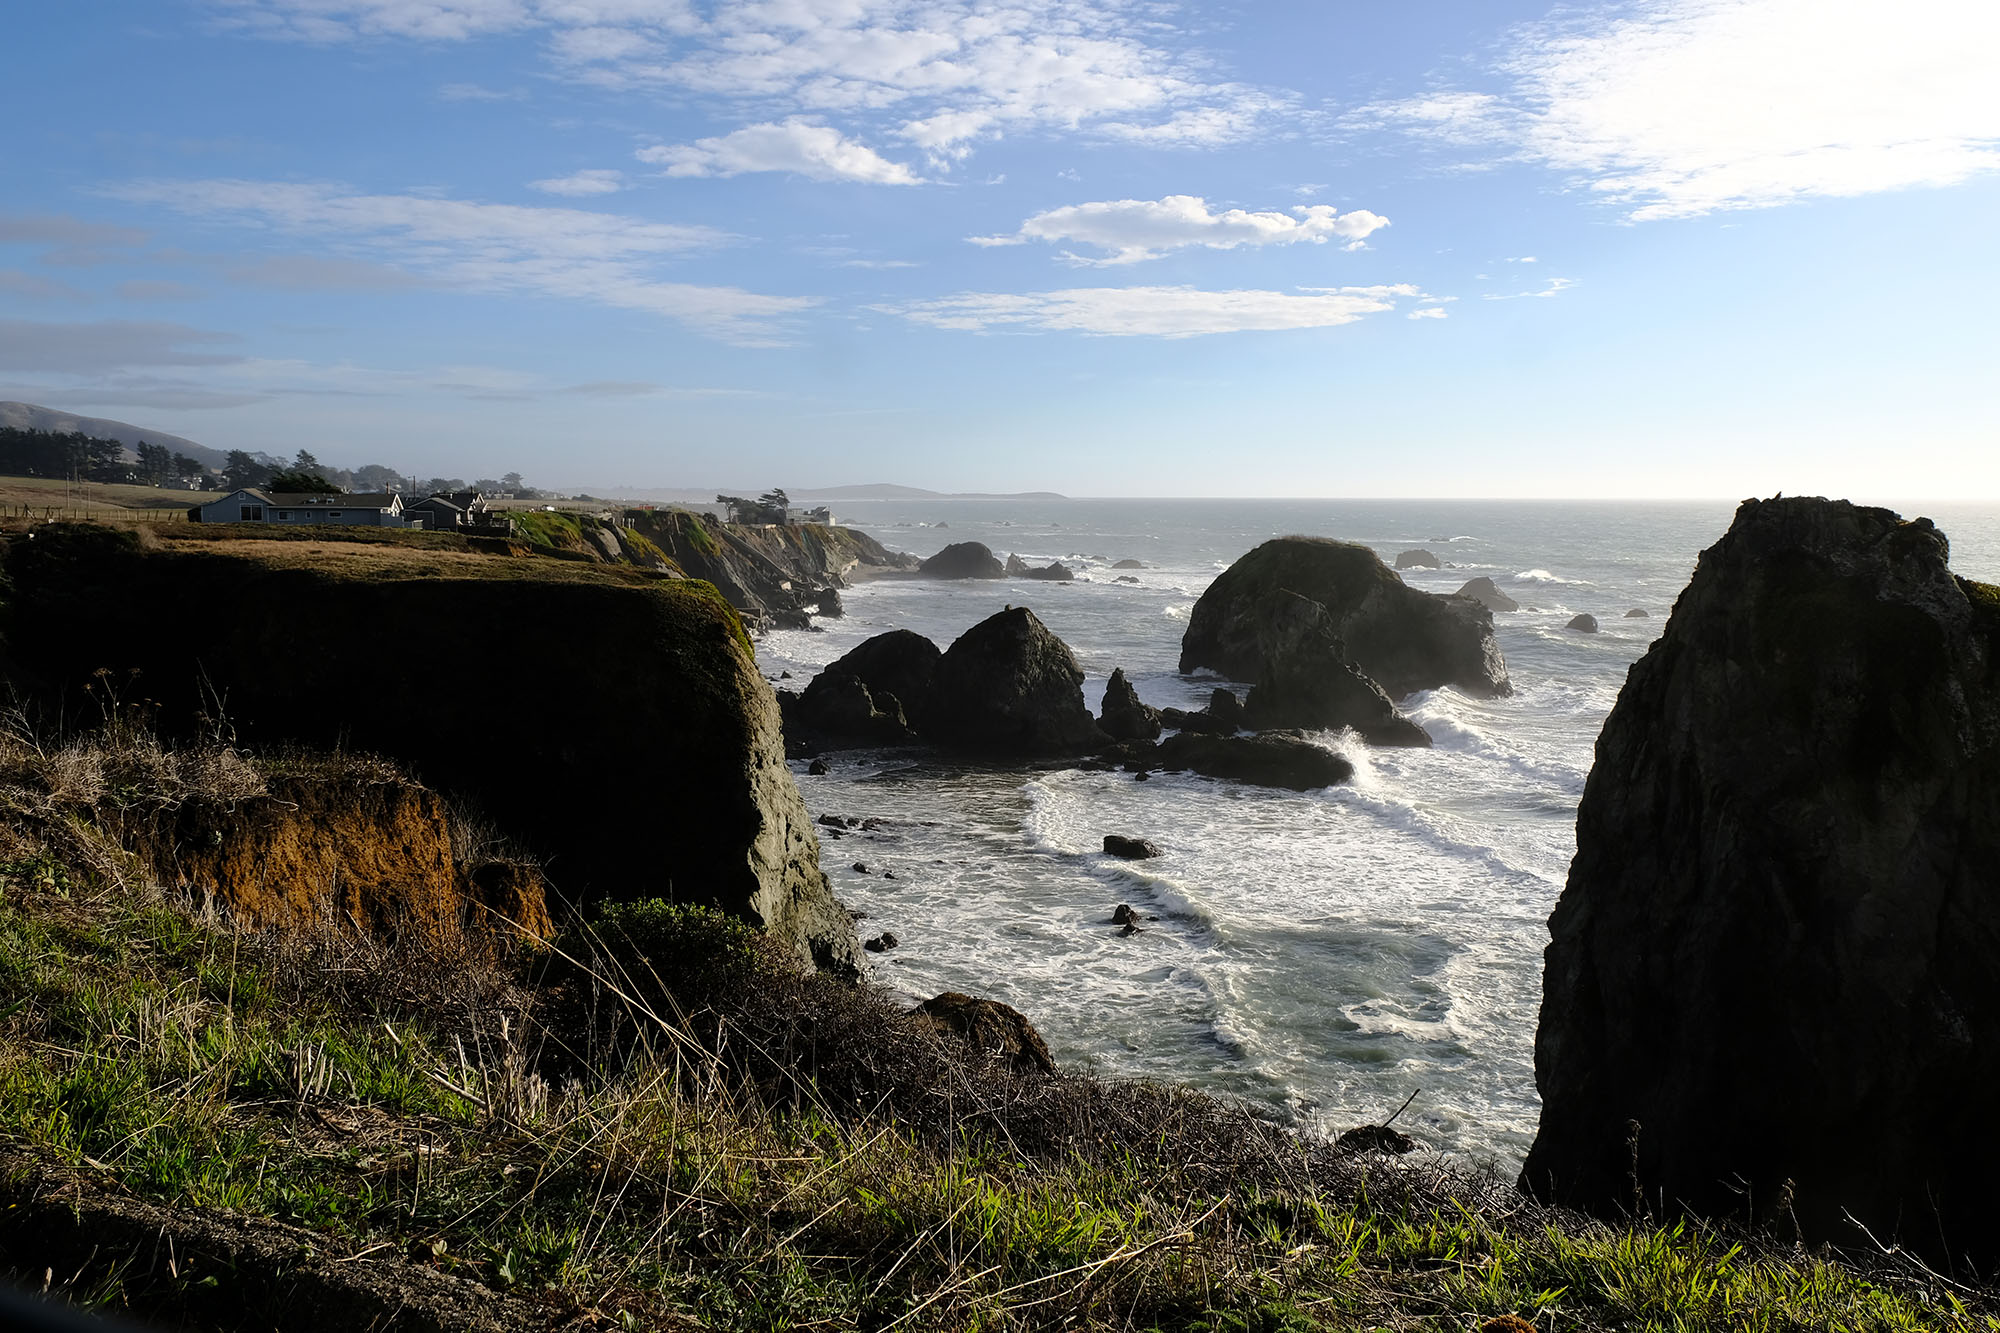 The coast road hugs these incredible cliffs